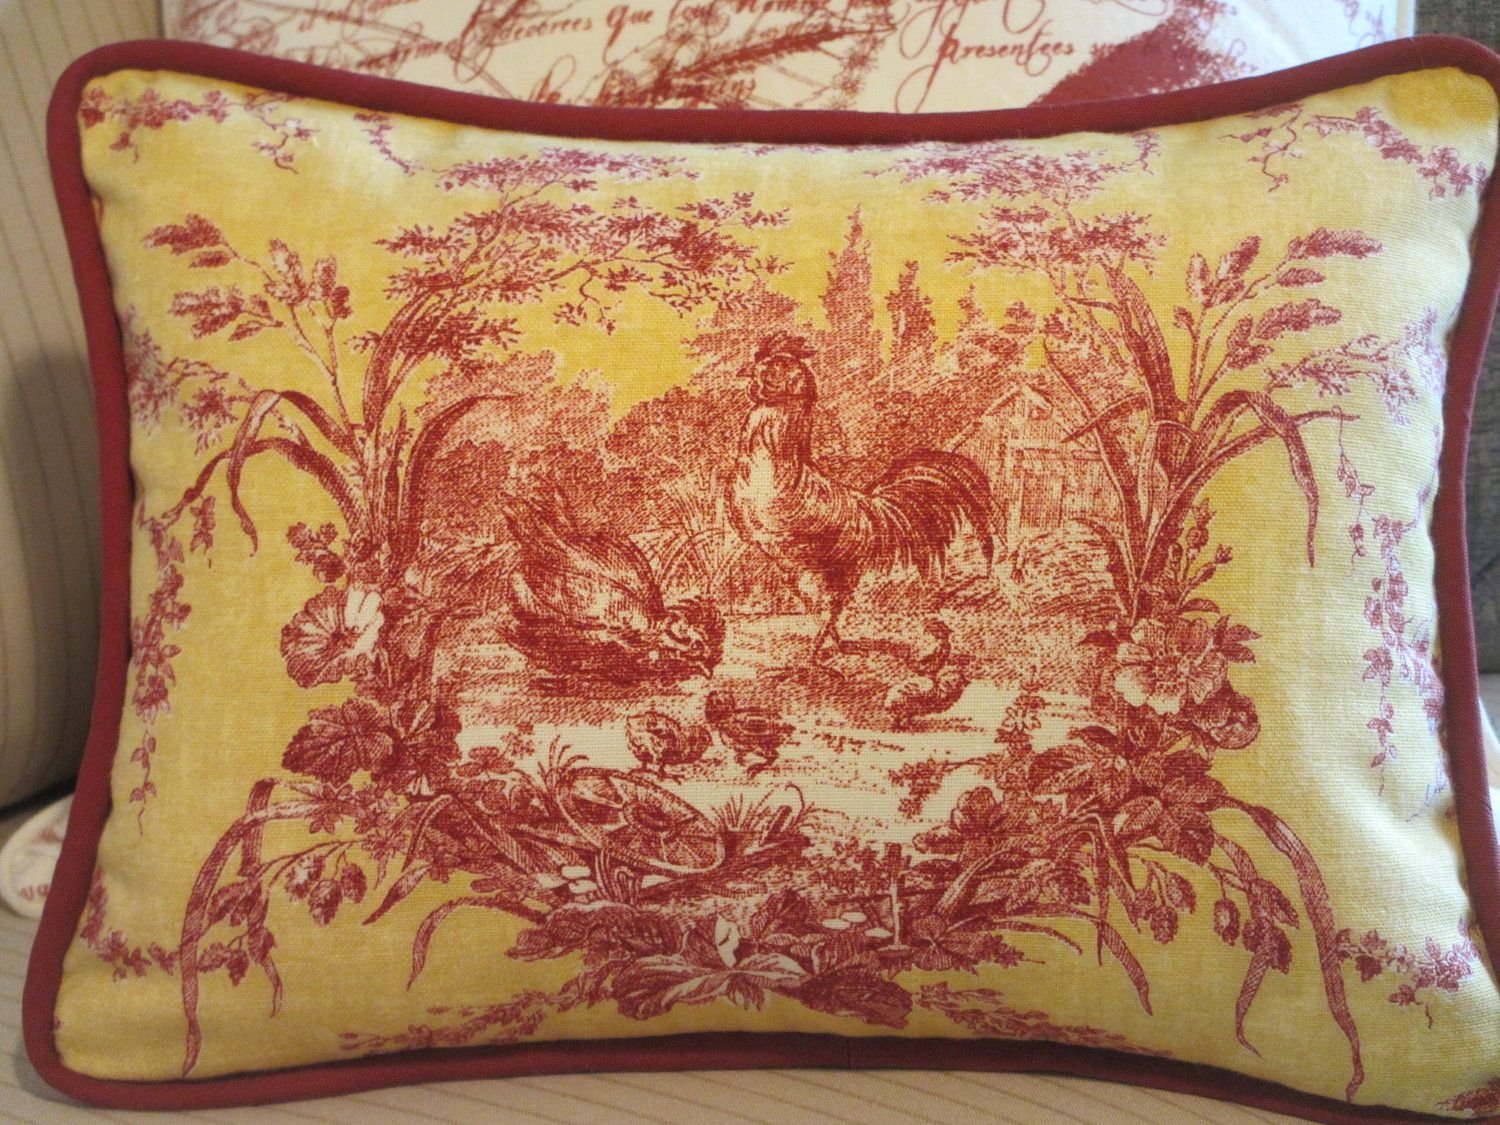 Französischer Landhausstil Stoffe Image Detail For Toile French Country Pillow Cover Toile